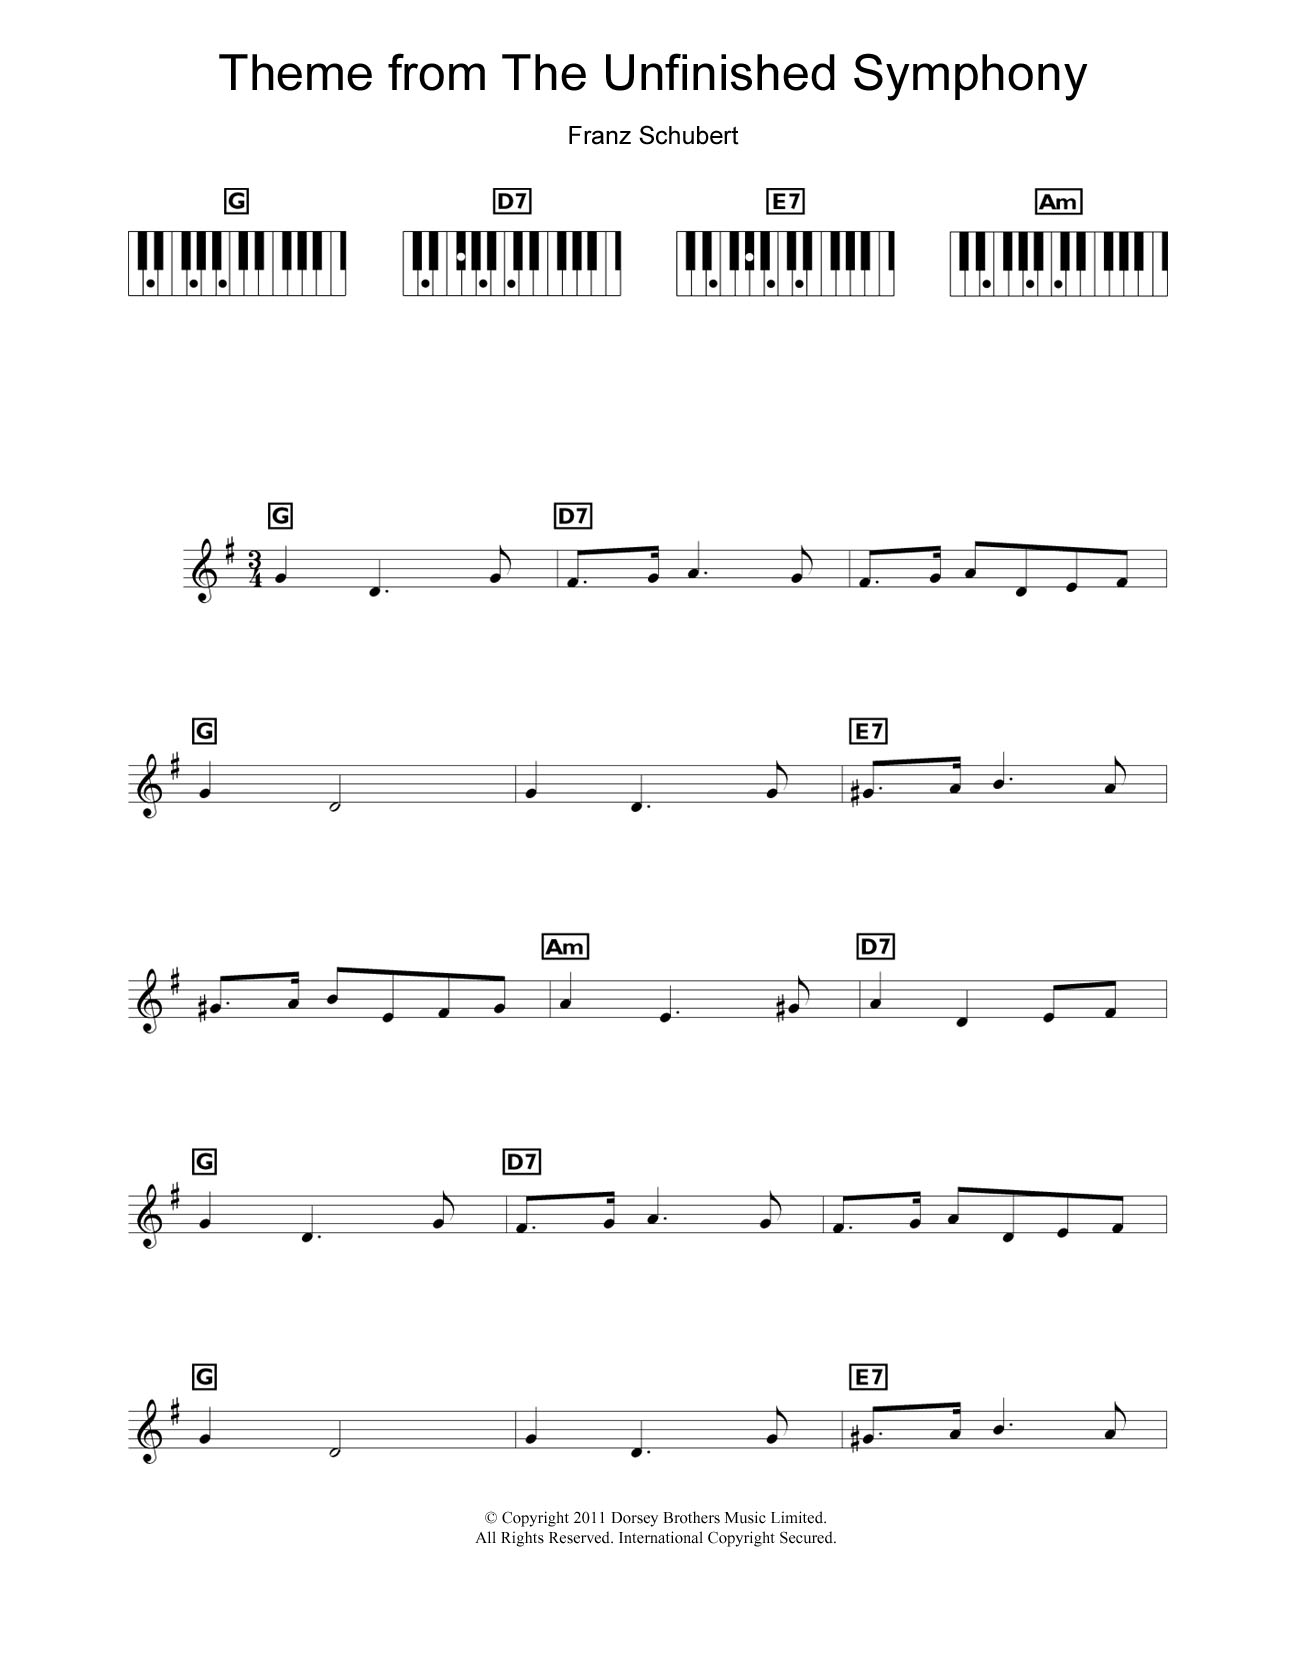 Theme From The Unfinished Symphony | Sheet Music Direct